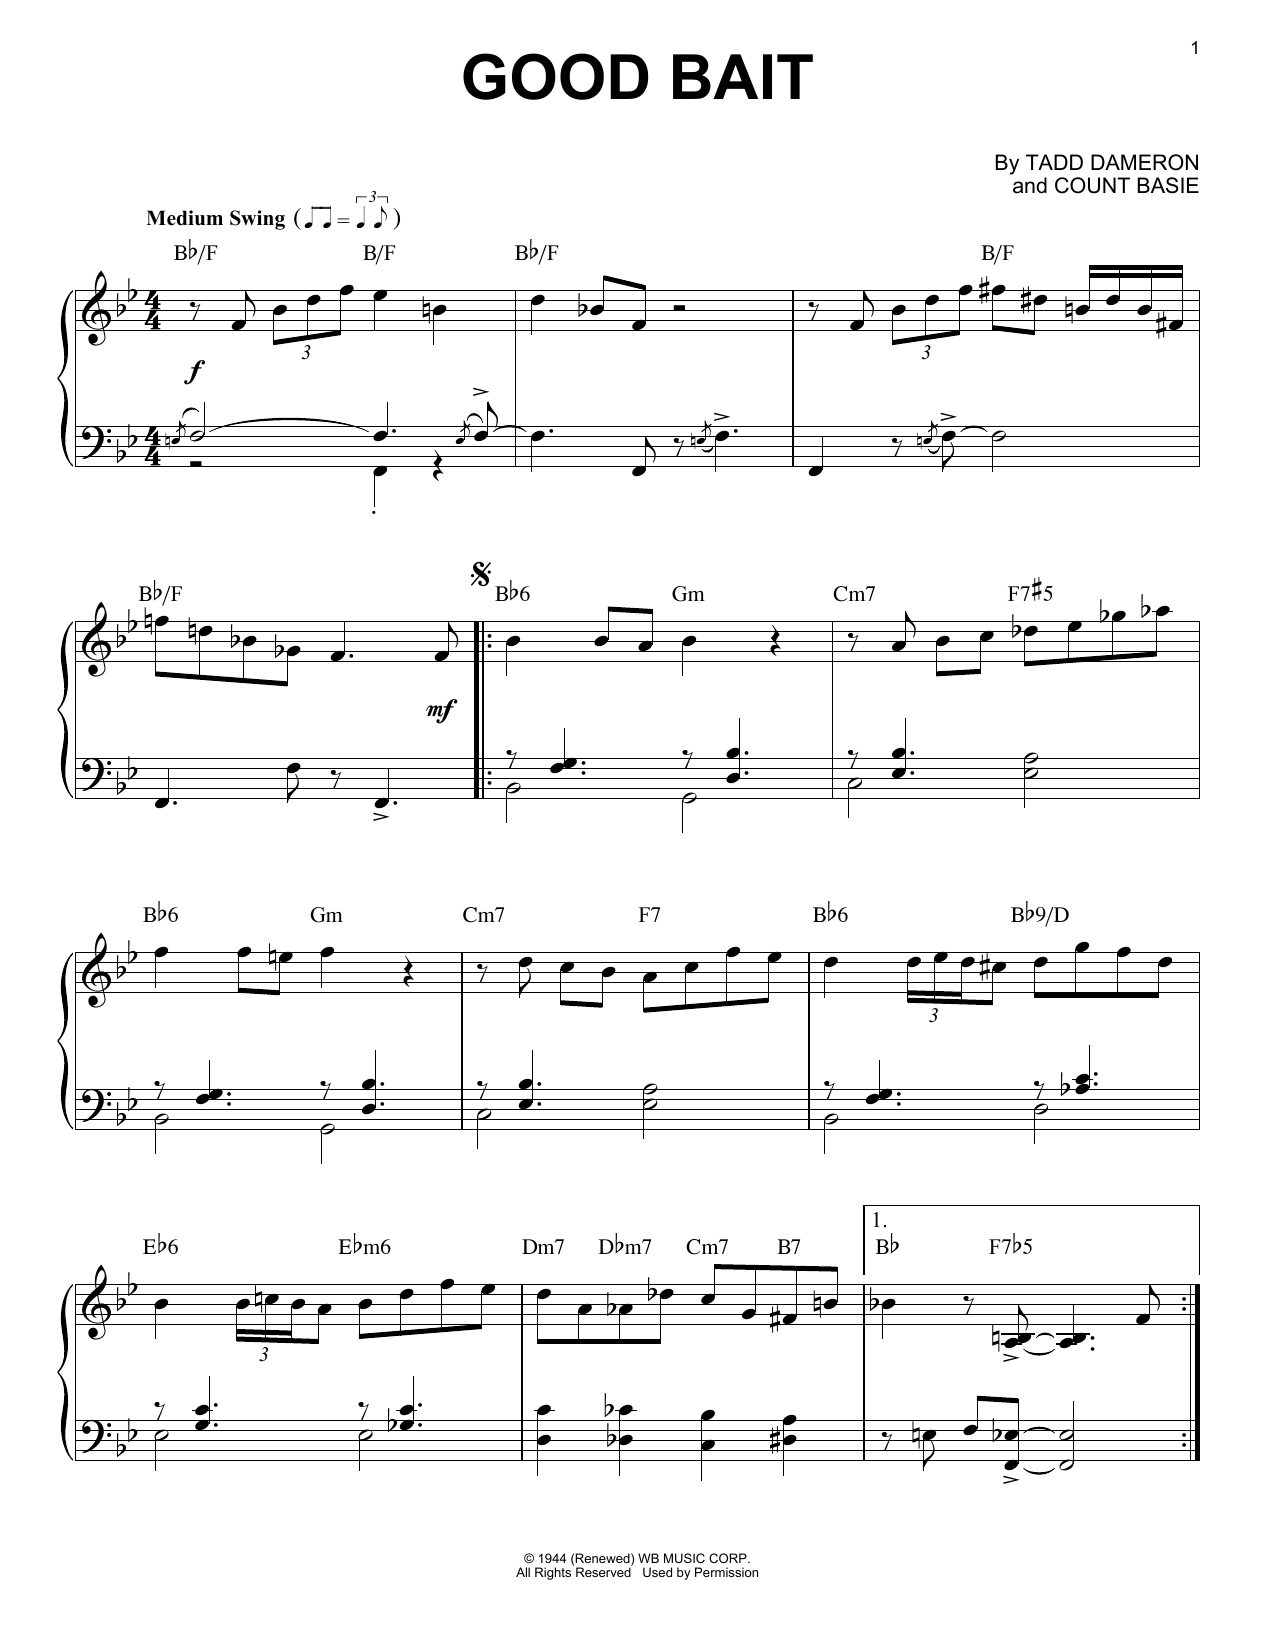 Count Basie Good Bait sheet music notes and chords. Download Printable PDF.